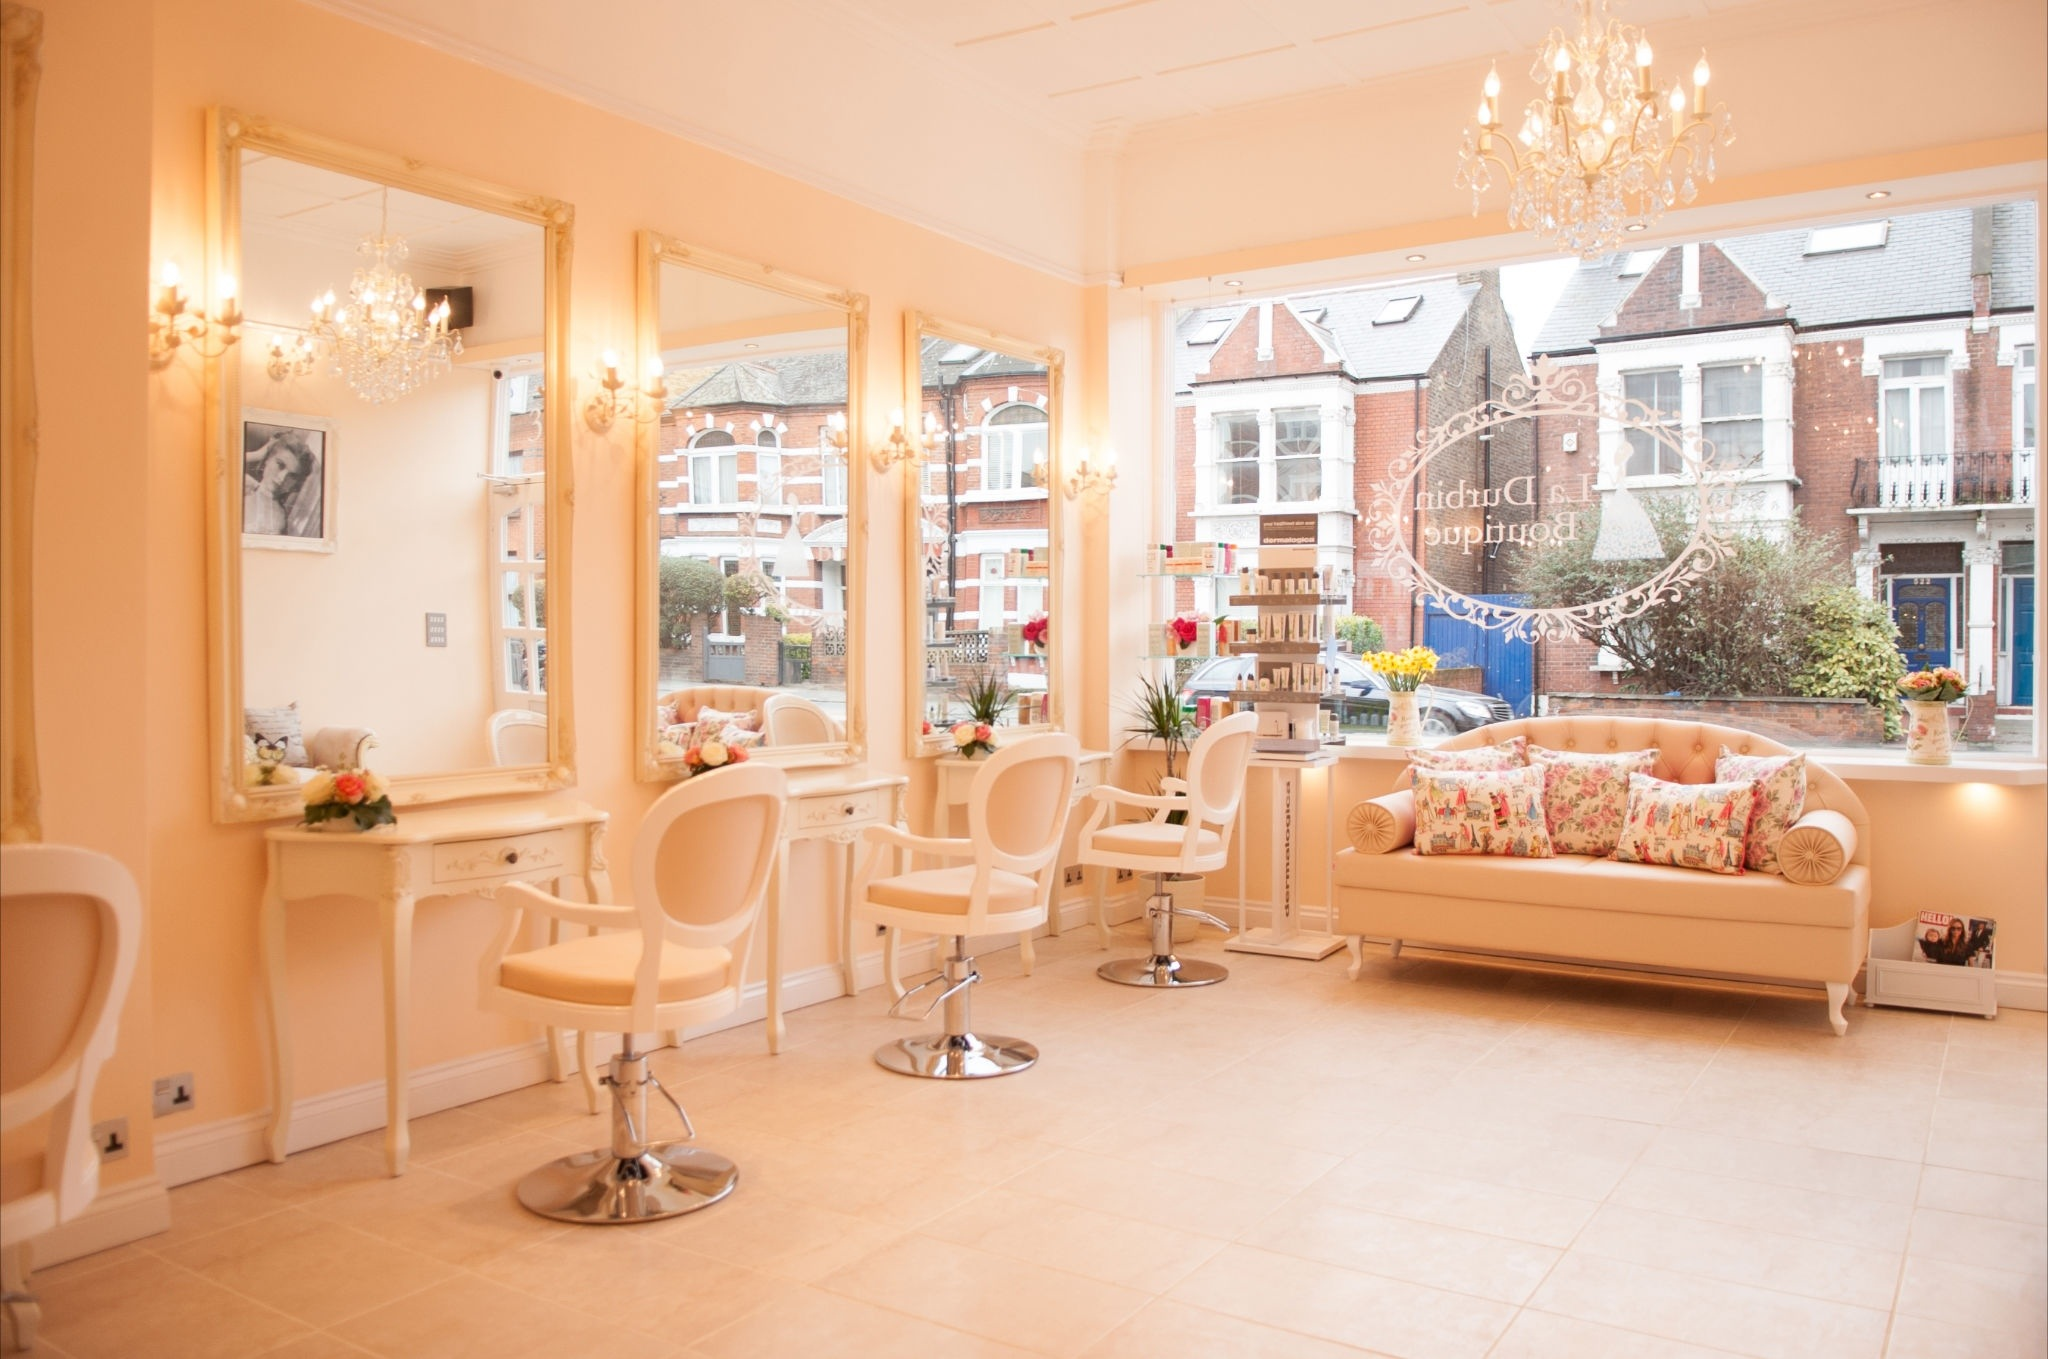 Beauty Hair Salon La Durbin Boutique The Chic Fulham Salon Mummy Of Many